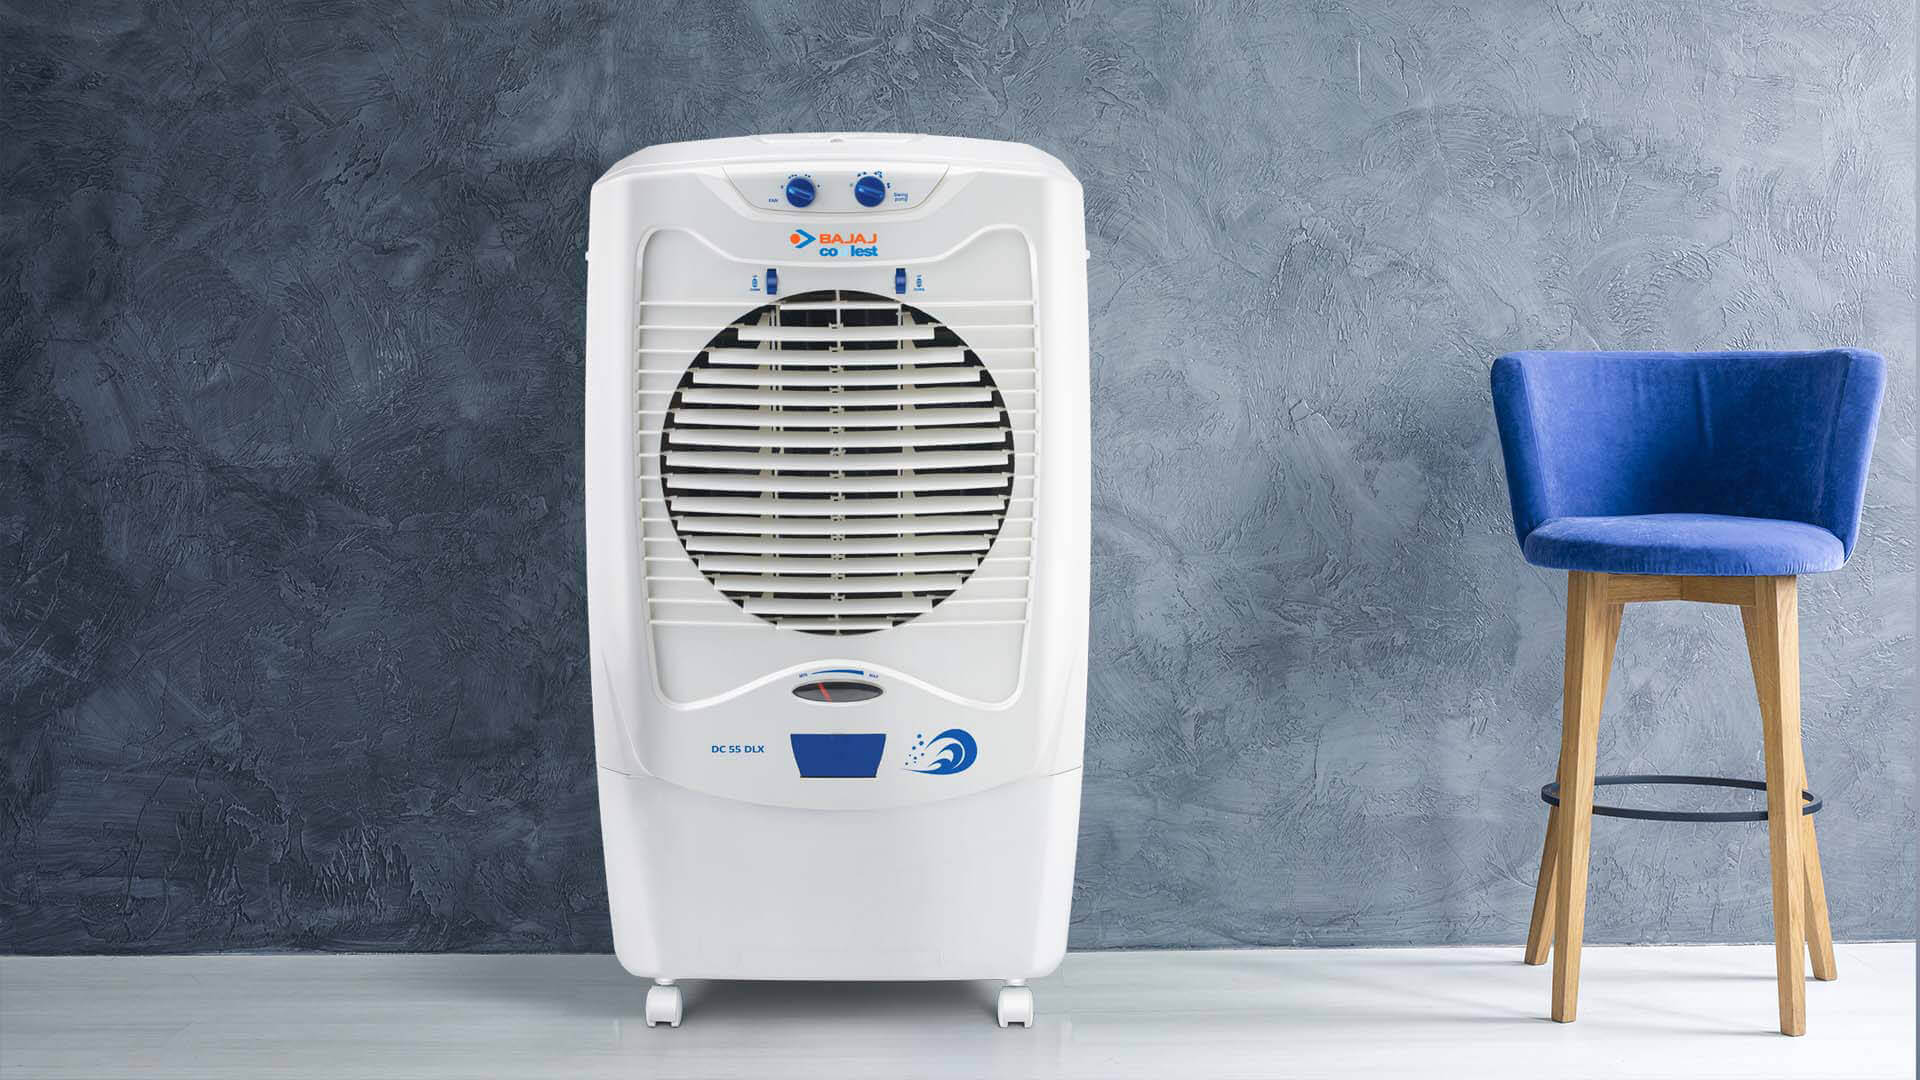 Best Air Cooler For Room In India 2021